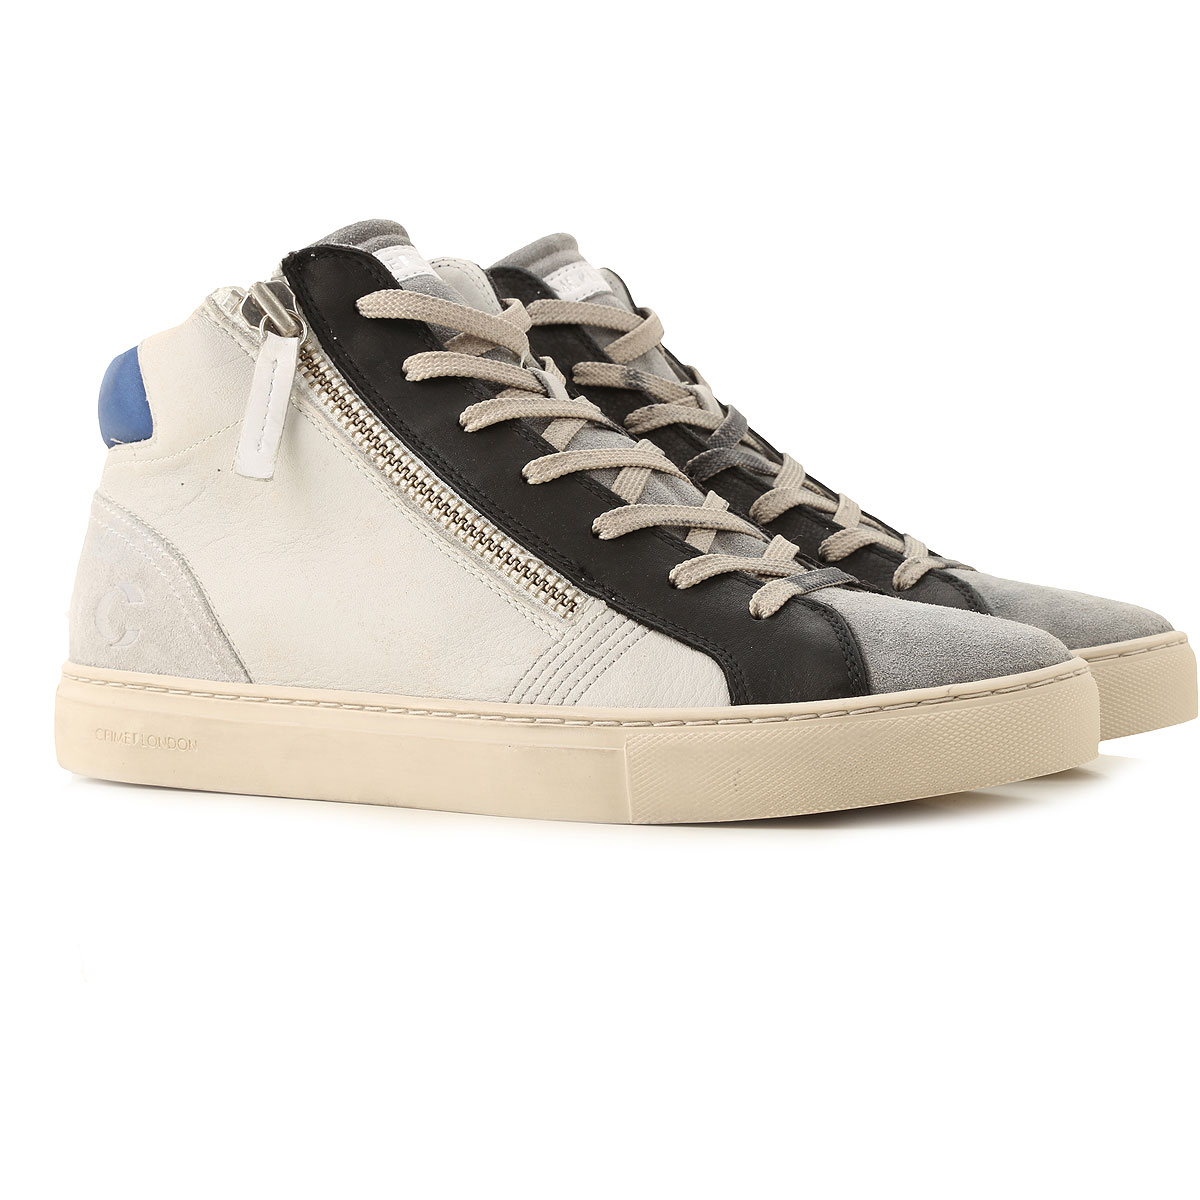 Crime Sneakers for Men On Sale, Grey, Leather, 2019, 10 10.5 11.5 7.5 8 9